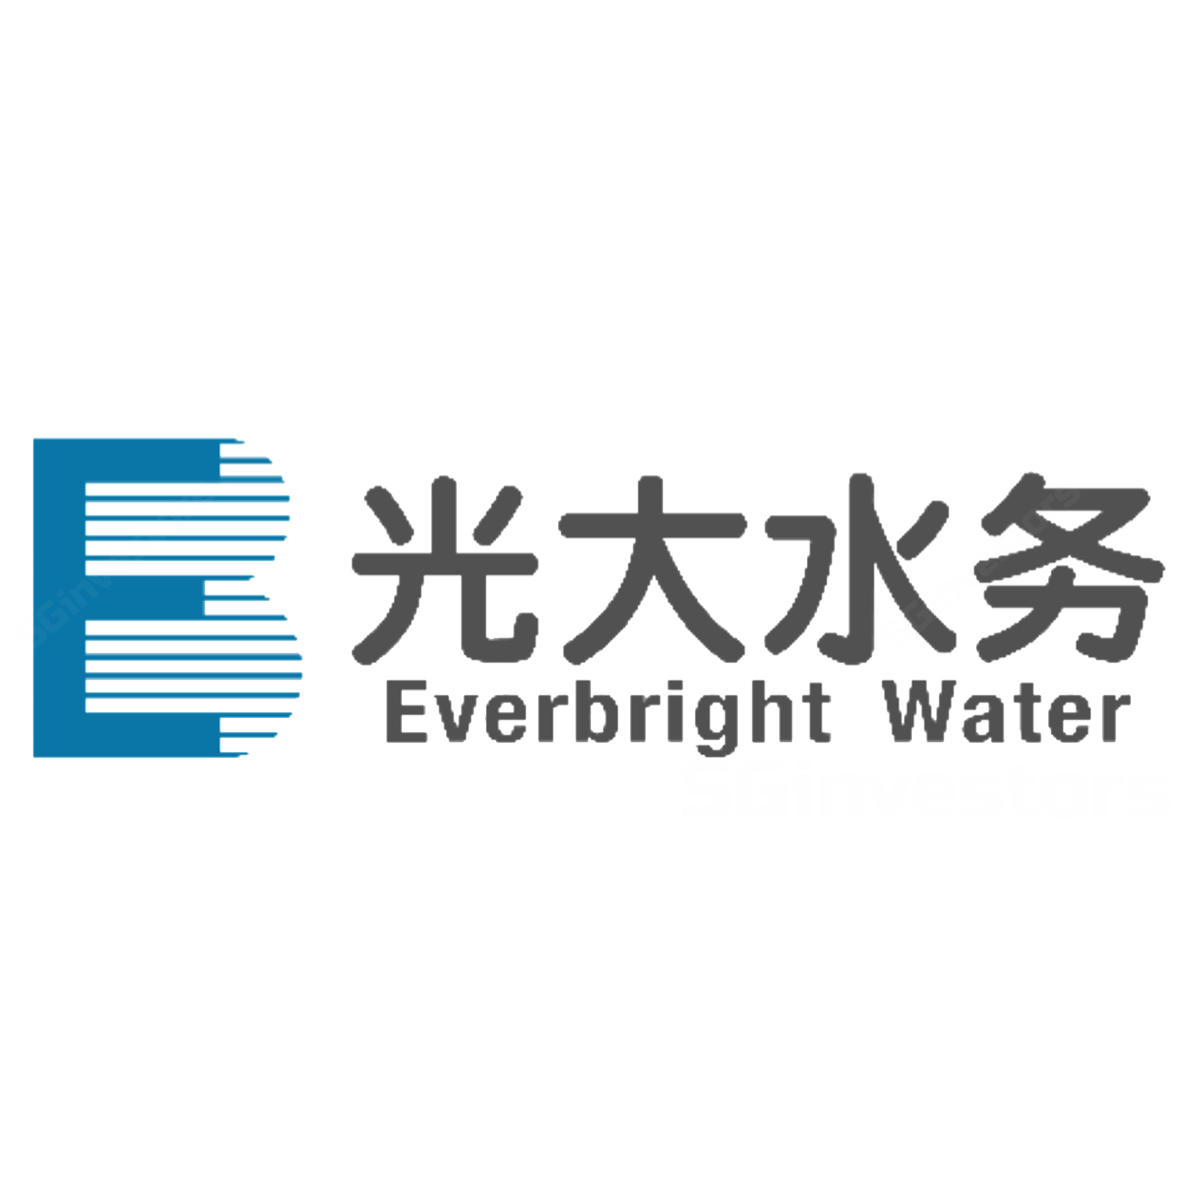 China Everbright Water (CEWL SP) - DBS Vickers 2017-08-08: Strong Technology To Drive New Business Development